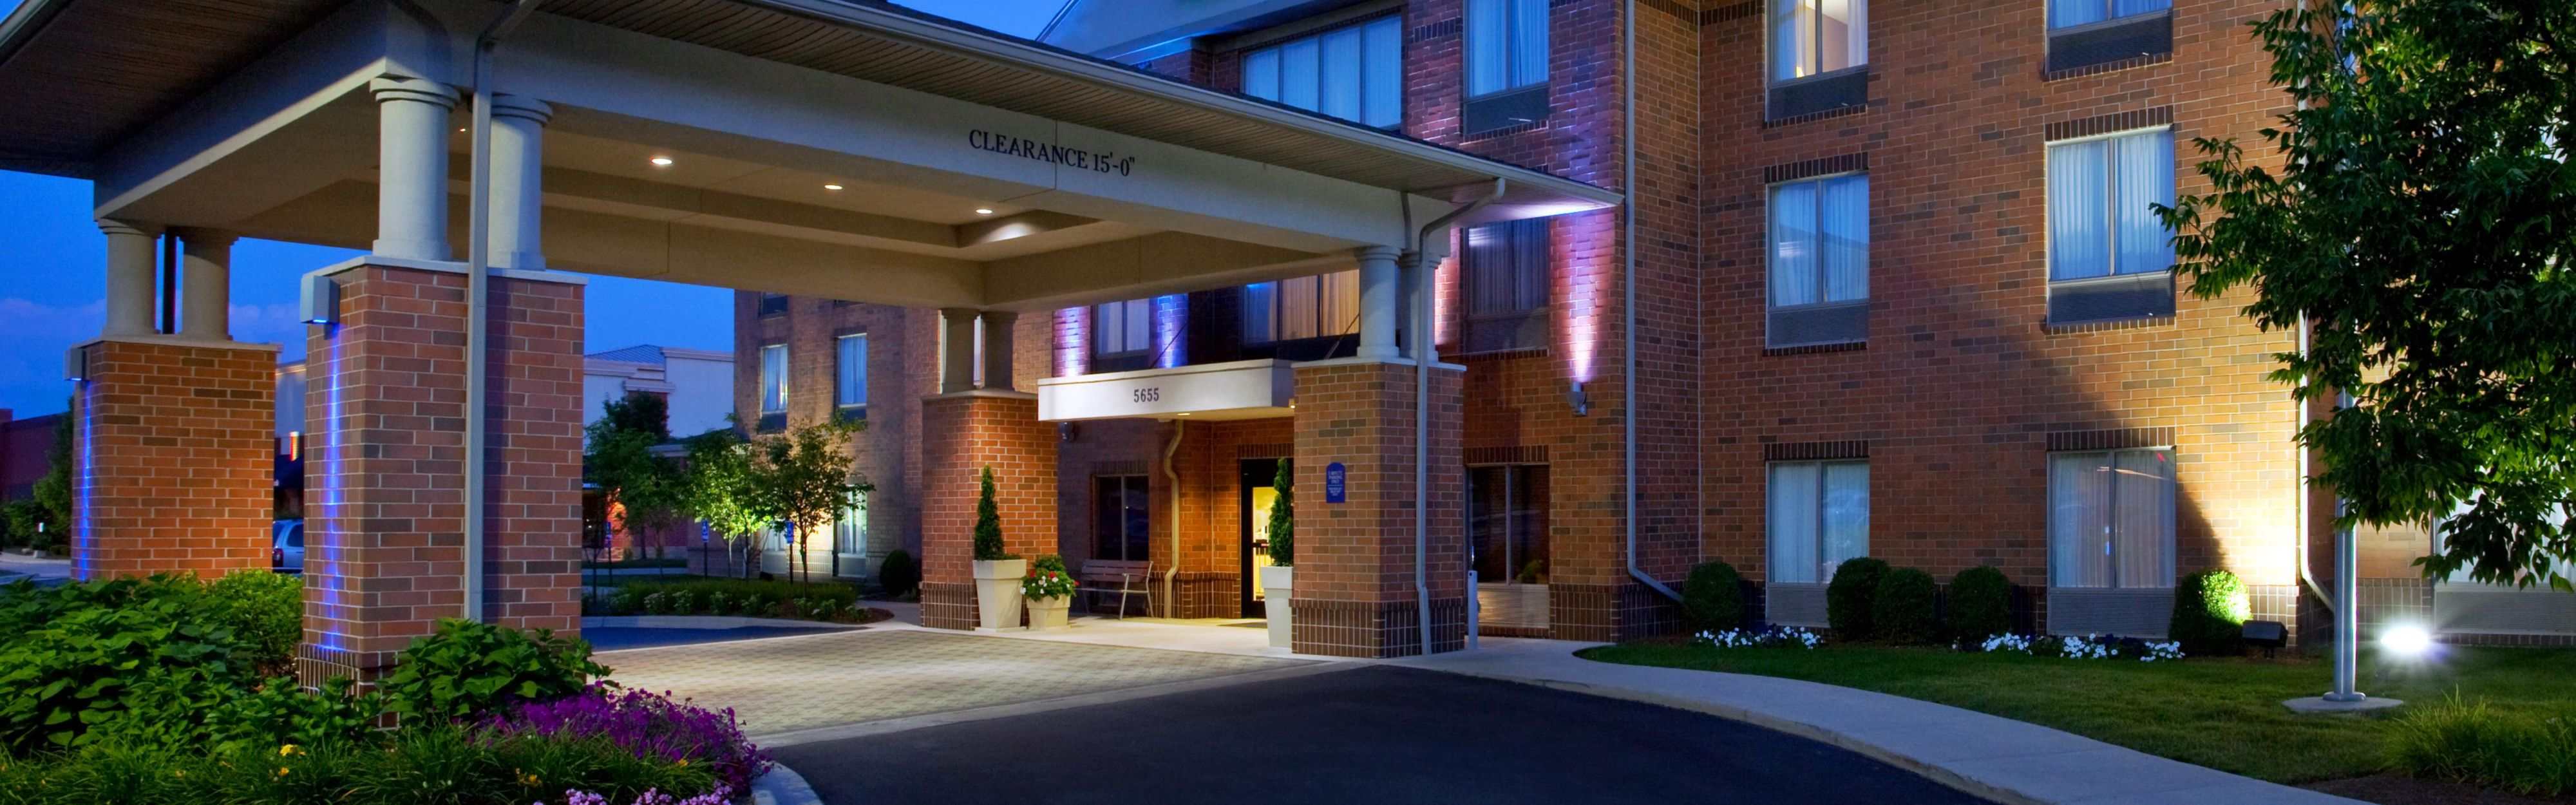 Hotels In Centerville Ohio Area